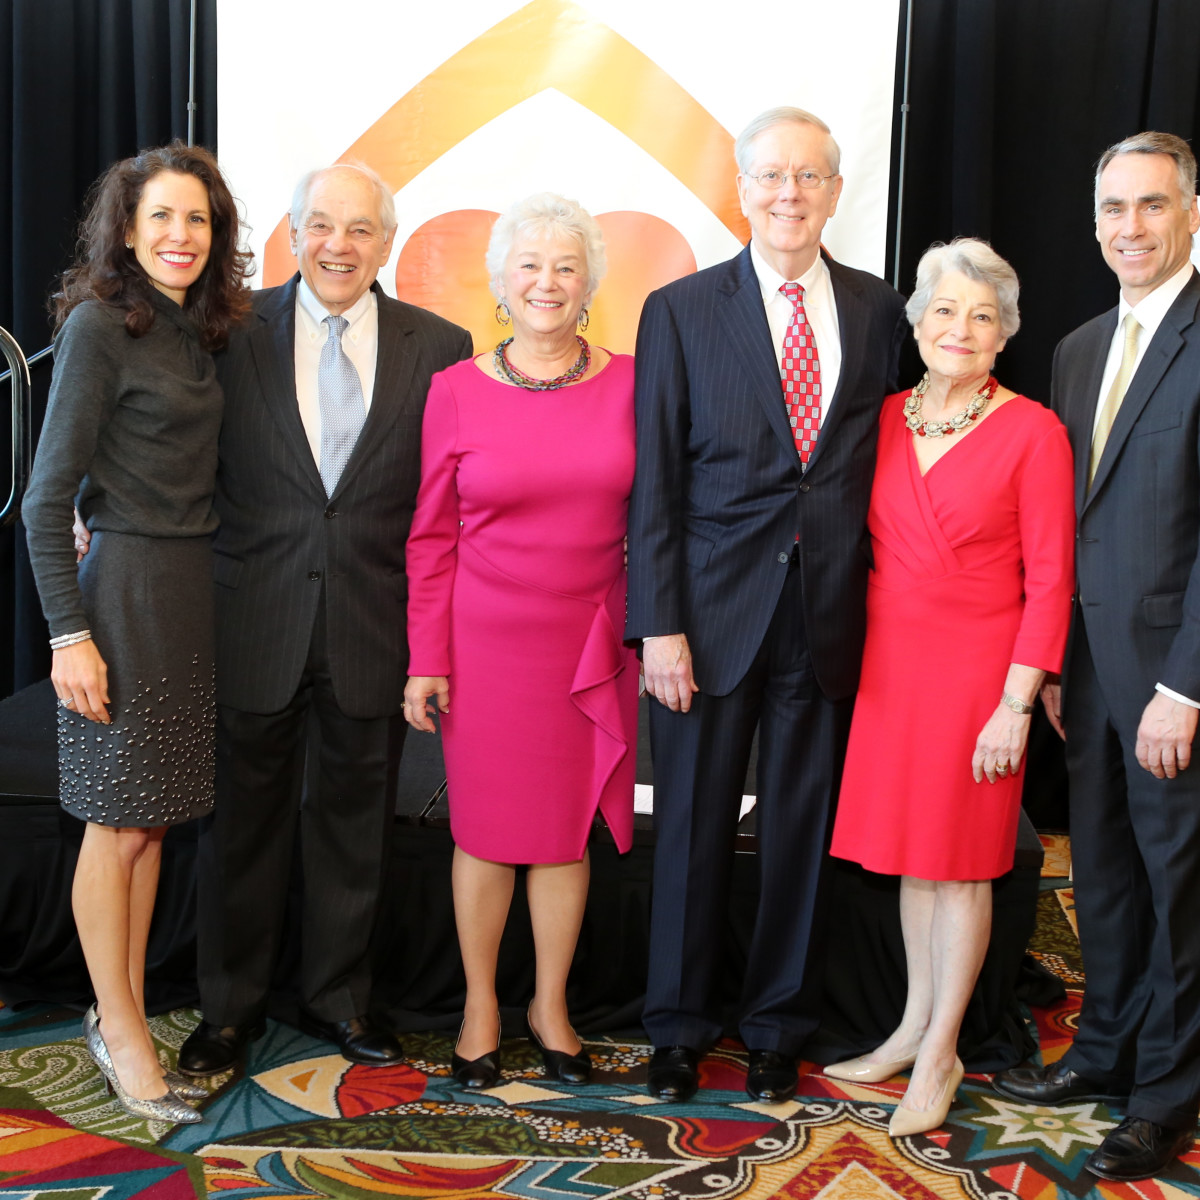 Neighborhood Centers luncheon, Feb. 2016, Gina Luna, Vic Samuels, Bobby Samuels, Darren Walker, Angela Blanchard, Jonathan Day